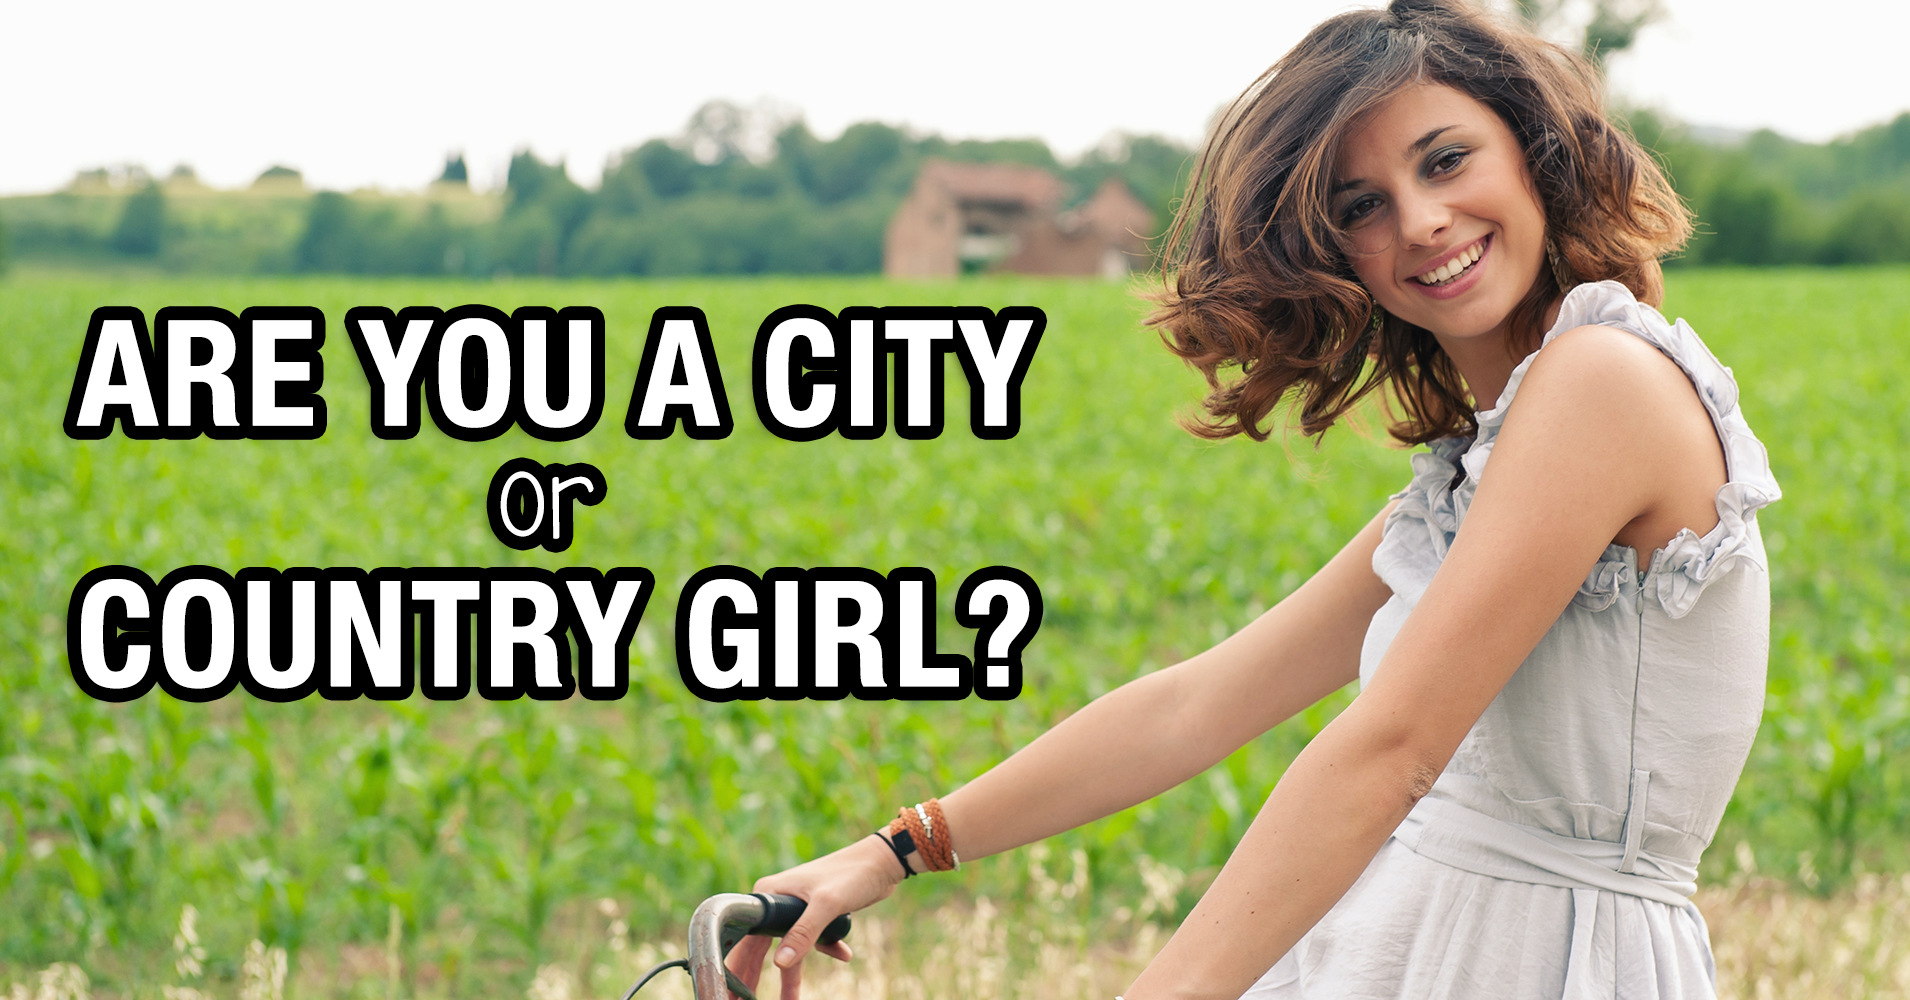 f9b458928bcf Are You A City or Country Girl  - Quiz - Quizony.com